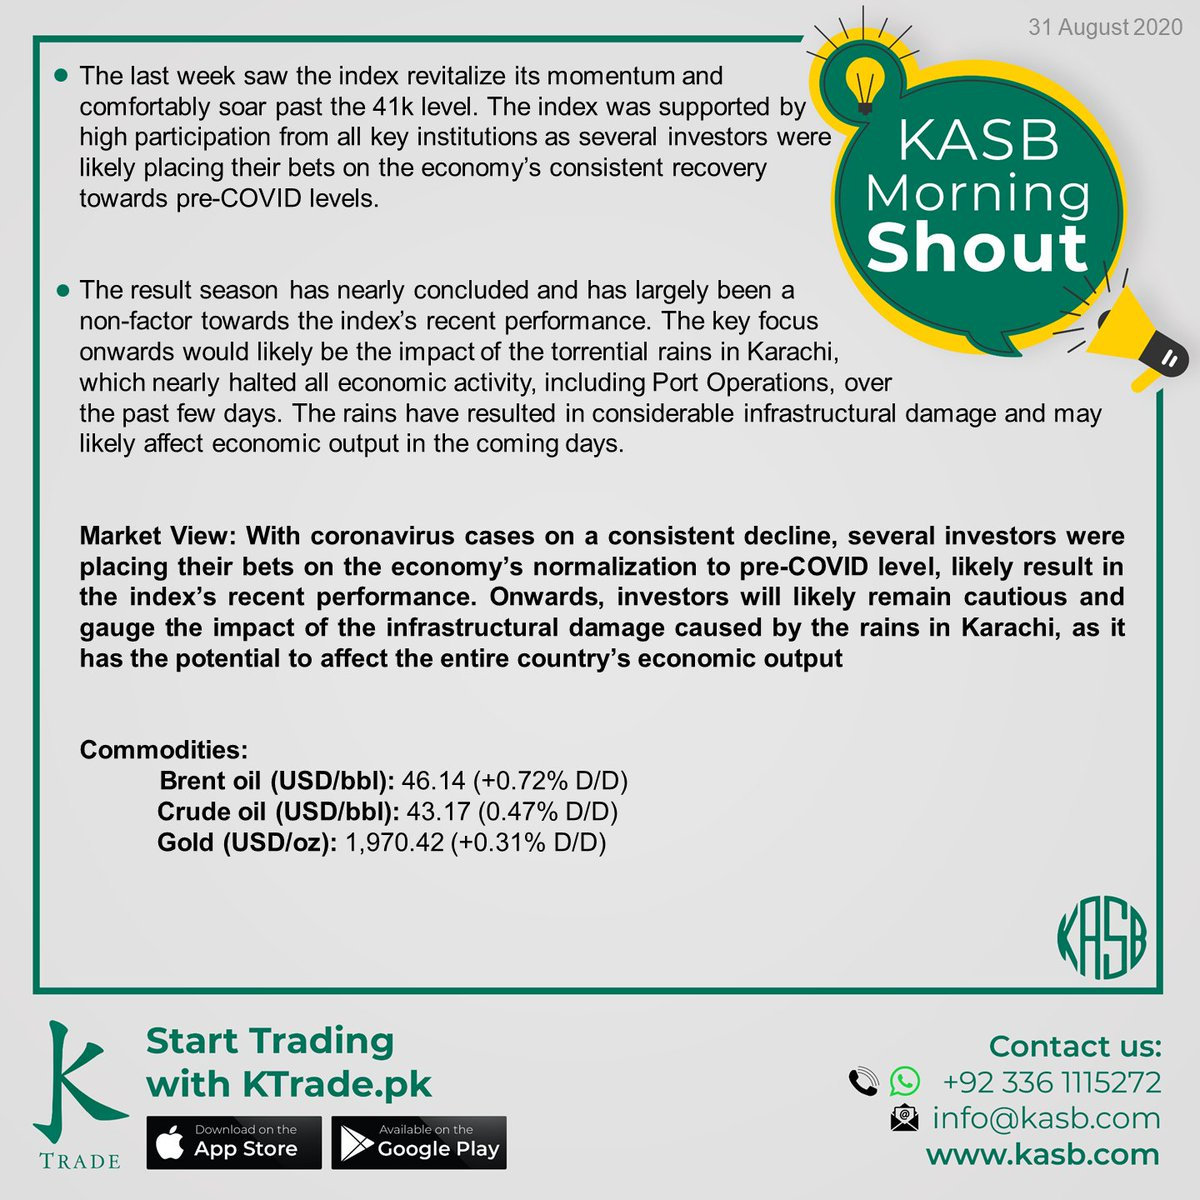 KASB Morning Shout: Our views on today's news #kasb #smartinvesting #psx #stockmarket #KTrade #onlinetrading #pakistaneconomy #imrankhan #sbp #inflation #kse100 #brokeragehouse #psxstocks #marketupdate #emergingmarkets #frontiermarkets #news #morning #today #views https://t.co/PD3evAtfwB